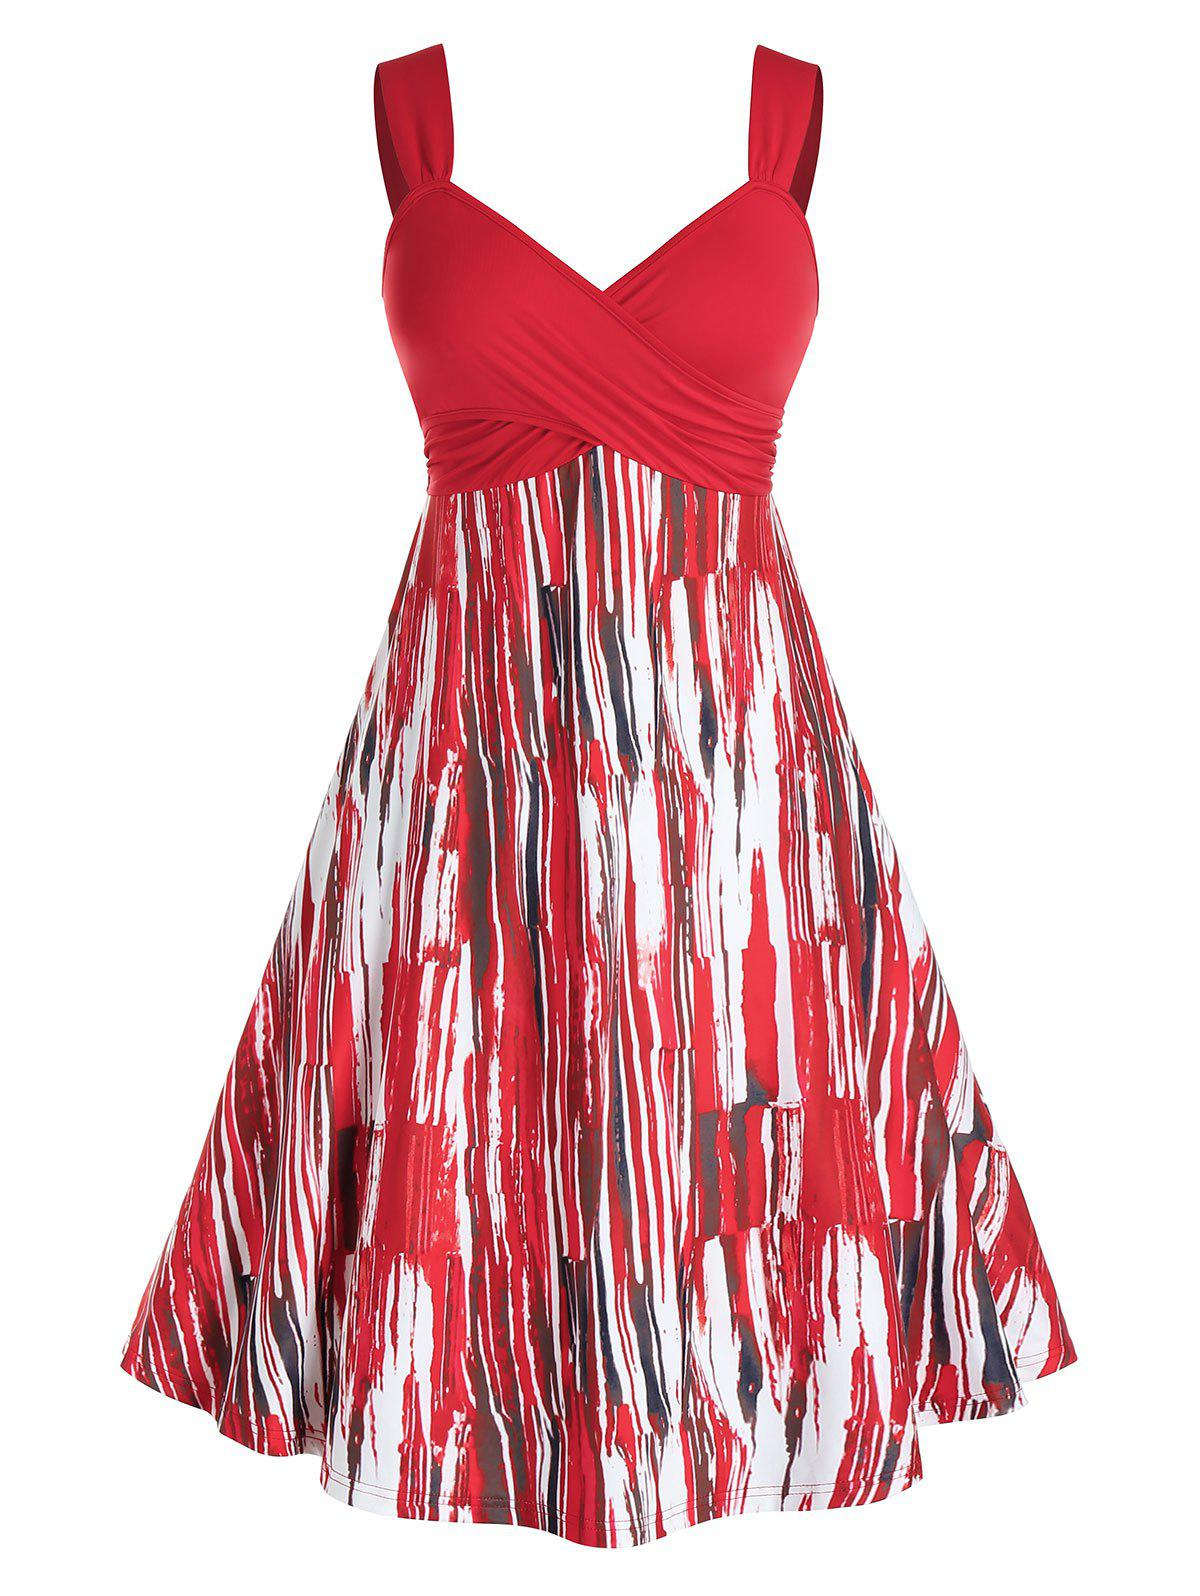 Plus Size Crossover Backless A Line Print Dress - RED 2X